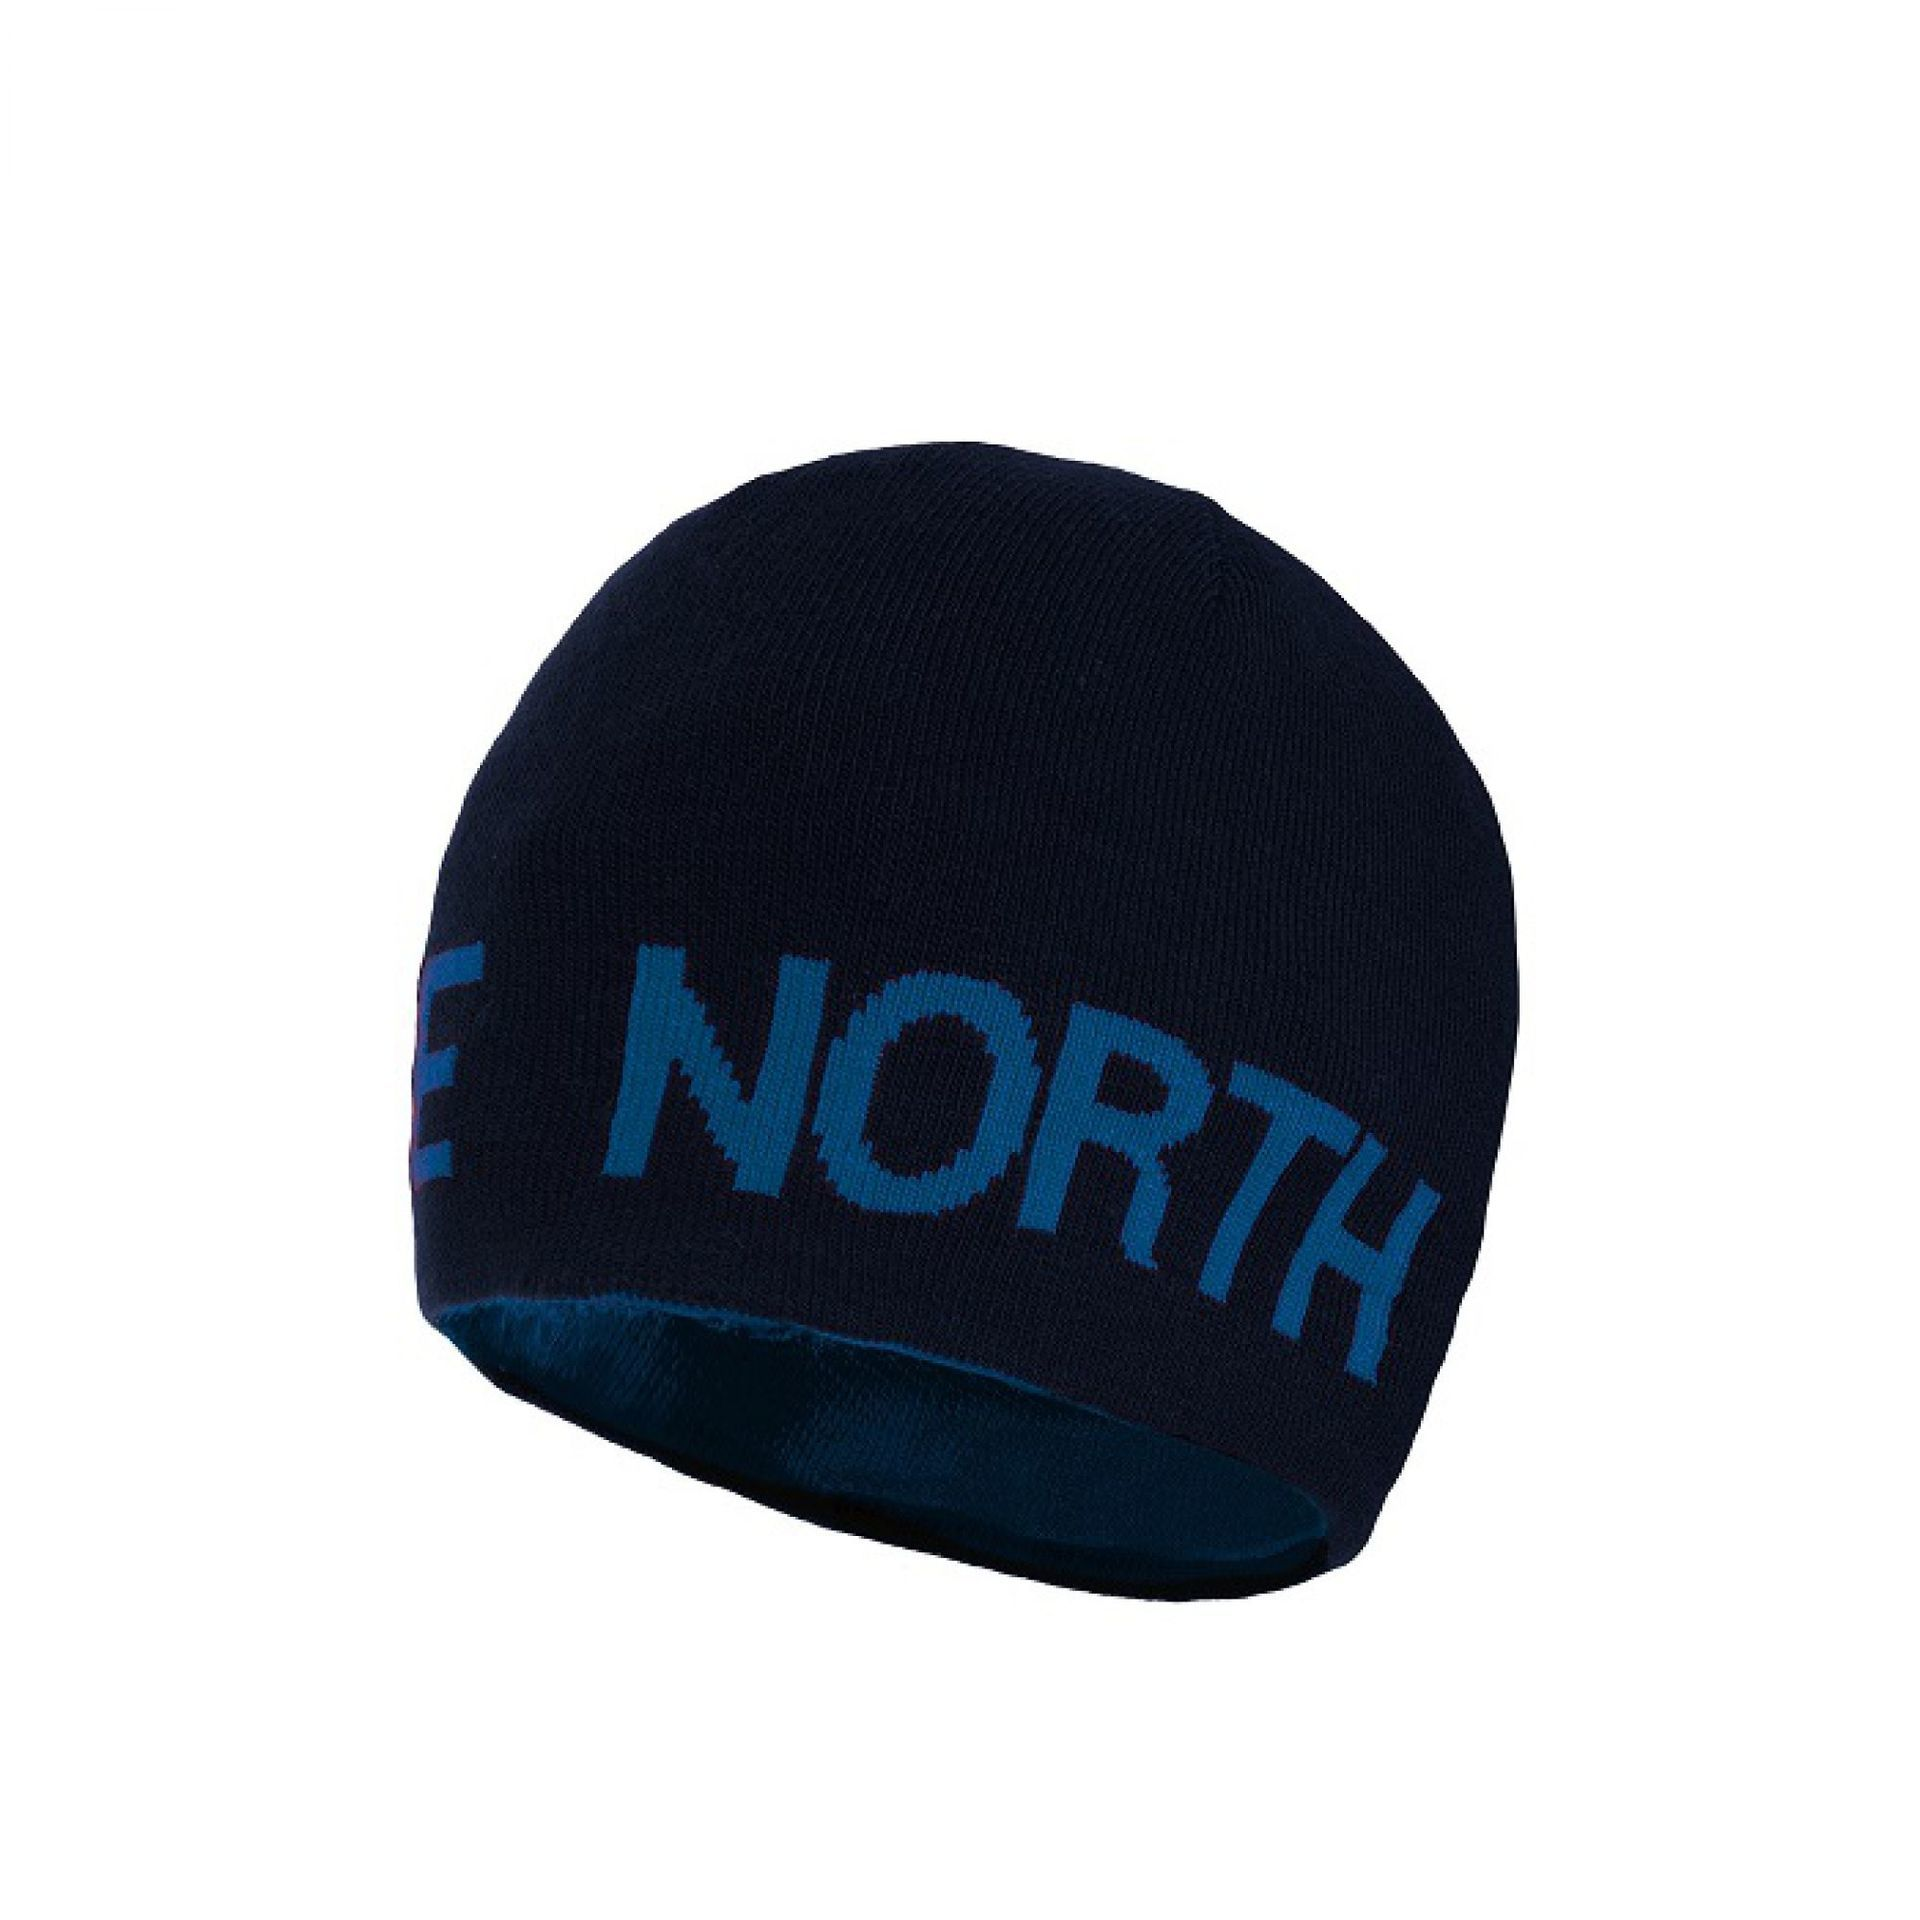 THE NORTH FACE REVERSIBLE TNF BANNER GRANATOWY|NIEBIESKI